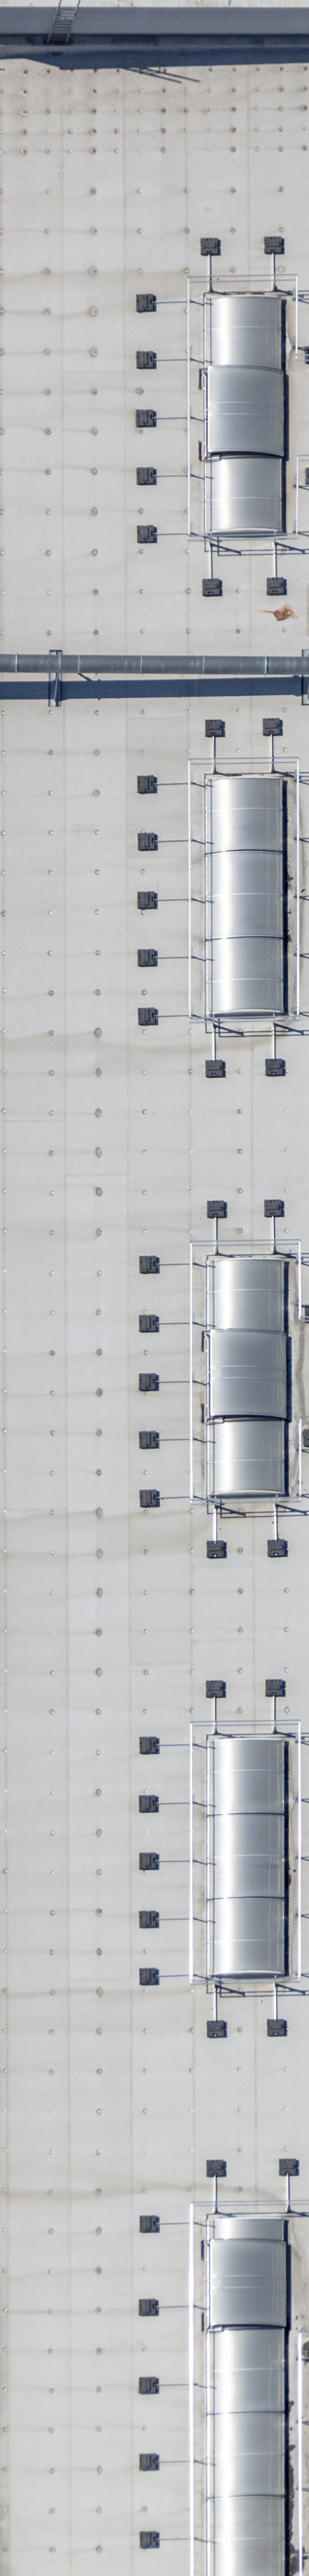 Aerial view of the roof of the kitchen manufacturer Schueller in Herriden - Klaus Leidorf Aerial Photography